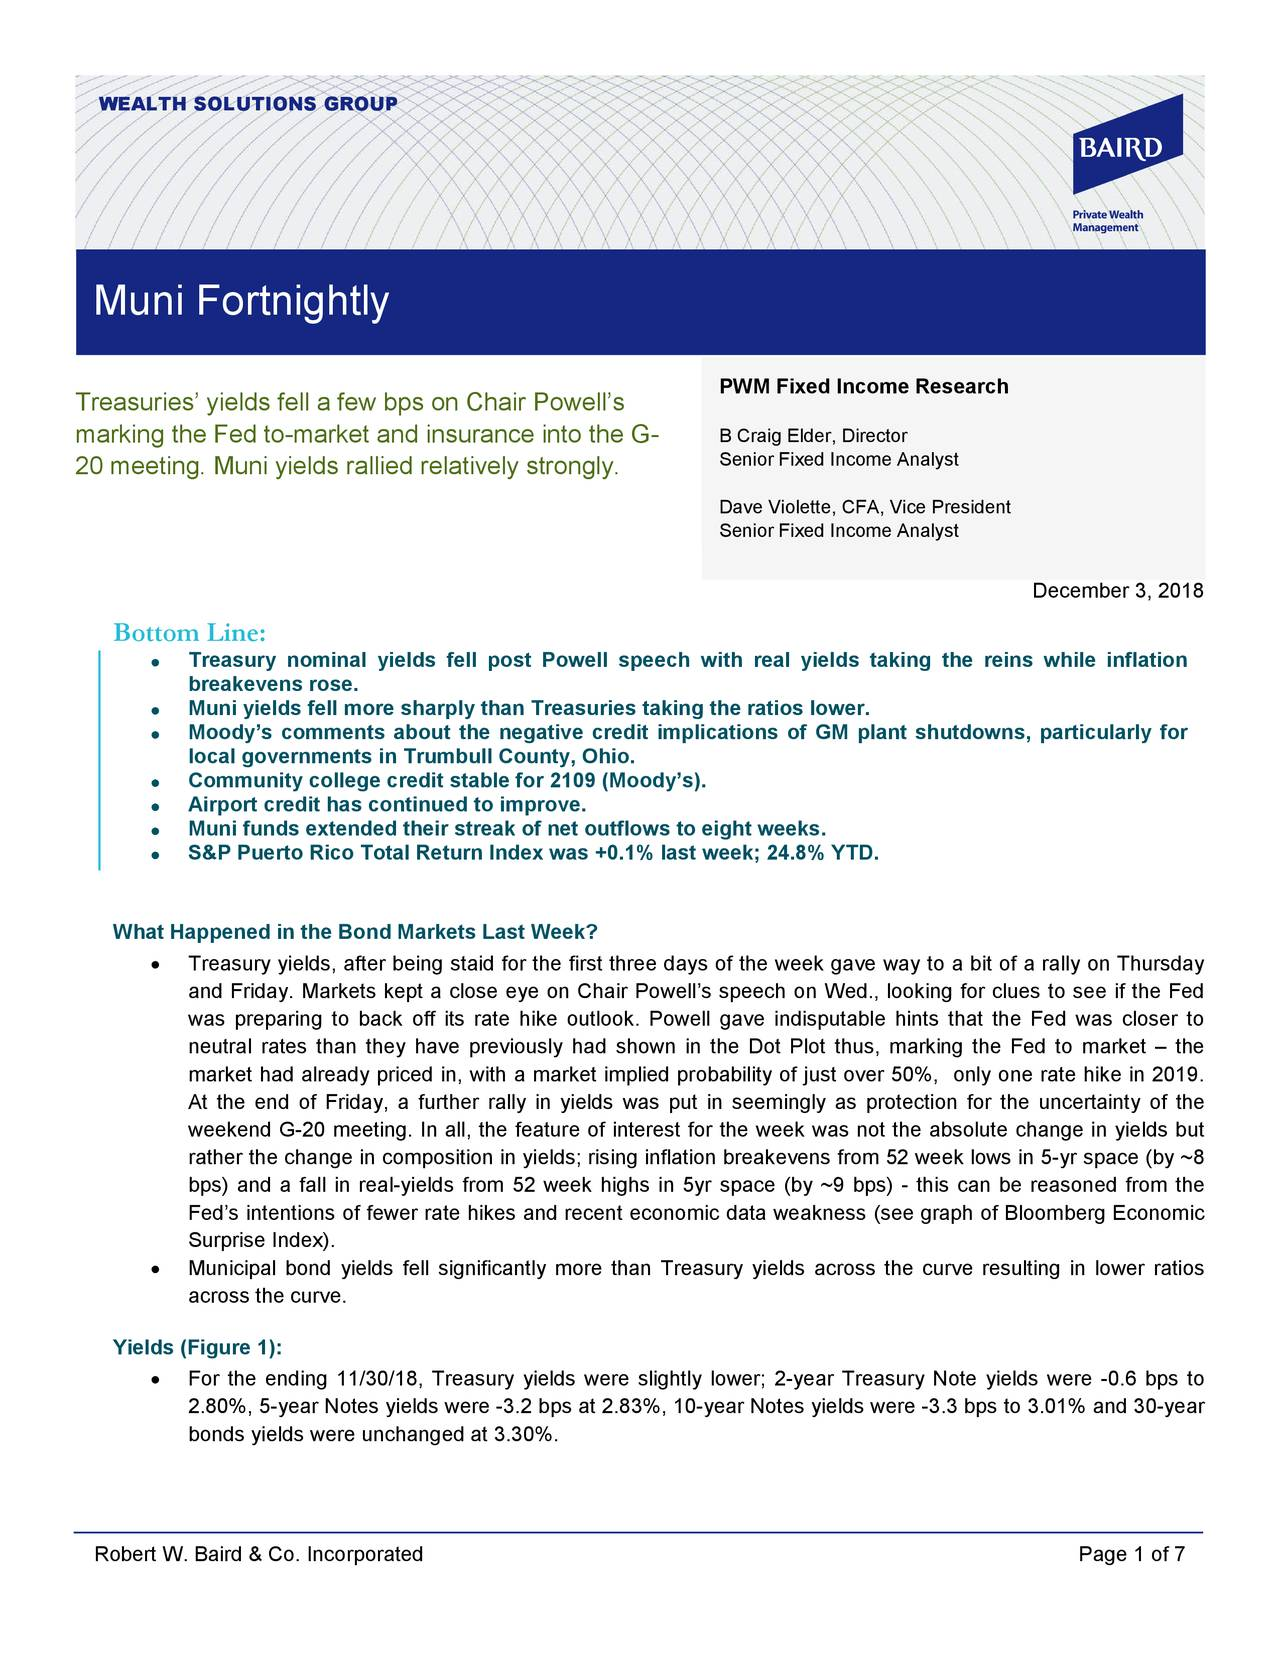 Muni Fortnightly PWM Fixed Income Research Treasuries' yields fell a few bps on Chair Powell's marking the Fed to-market and insurance into the G- B Craig Elder, Director David N. Violette, CFA, Vice President 20 meeting. Muni yields rallied relatively strongly. Senior Fixed Income Analyst Dave Violette, CFA, Vice President Senior Fixed Income Analyst December 3, 2018 Bottom Line: • Treasury nominal yields fell post Powell speech with real yields taking the reins while inflation breakevens rose. • Muni yields fell more sharply than Treasuries taking the ratios lower. Moody's comments about the negative credit implications of GM plant shutdowns, particularly for • local governments in Trumbull County, Ohio. • Community college credit stable for 2109 (Moody's). • Airport credit has continued to improve. • Muni funds extended their streak of net outflows to eight weeks. • S&P Puerto Rico Total Return Index was +0.1% last week; 24.8% YTD. What Happened in the Bond Markets Last Week? • Treasury yields, after being staid for the first three days of the week gave way to a bit of a rally on Thursday and Friday. Markets kept a close eye on Chair Powell's speech on Wed., looking for clues to see if the Fed was preparing to back off its rate hike outlook. Powell gave indisputable hints that the Fed was closer to neutral rates than they have previously had shown in the Dot Plot thus, marking the Fed to market – the market had already priced in, with a market implied probability of just over 50%, only one rate hike in 2019. At the end of Friday, a further rally in yields was put in seemingly as protection for the uncertainty of the weekend G-20 meeting. In all, the feature of interest for the week was not the absolute change in yields but rather the change in composition in yields; rising inflation breakevens from 52 week lows in 5- yr space (by ~8 bps) and a fall in real -yields from 52 week highs in 5 yr space (by ~9 bps) - this can be reasoned from the Fed's intentions of few